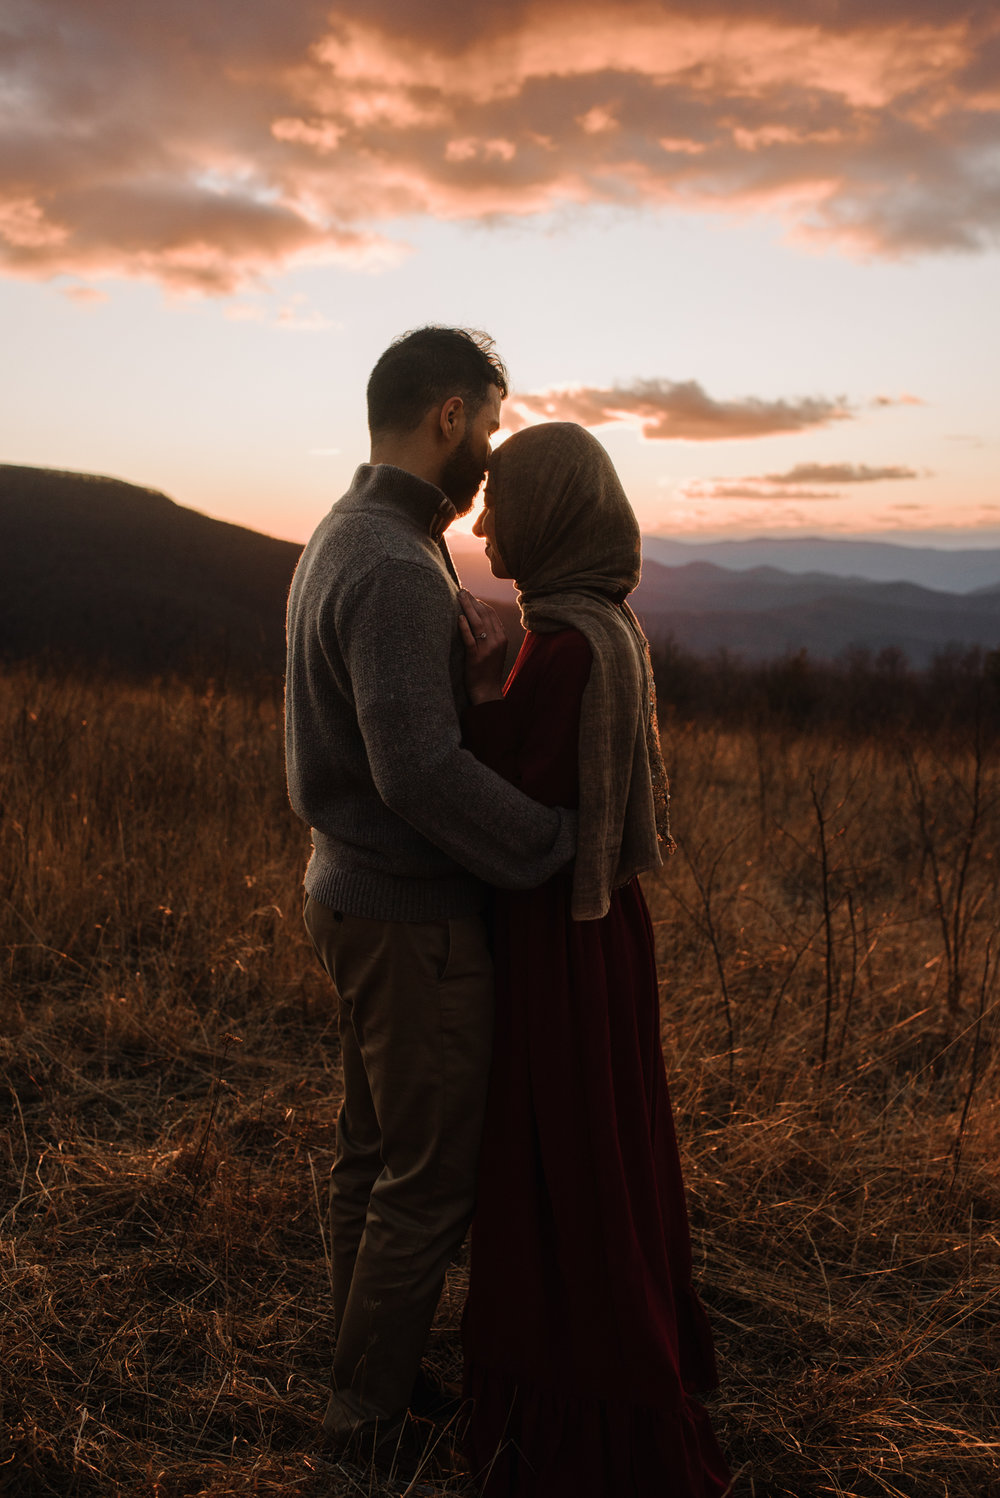 Safa and Ali - Shenandoah National Park Adventure Engagement Session - Blue Ridge Parkway - Skyline Drive - Blue Ridge Mountains - Virginia Elopement Photographer_37.JPG